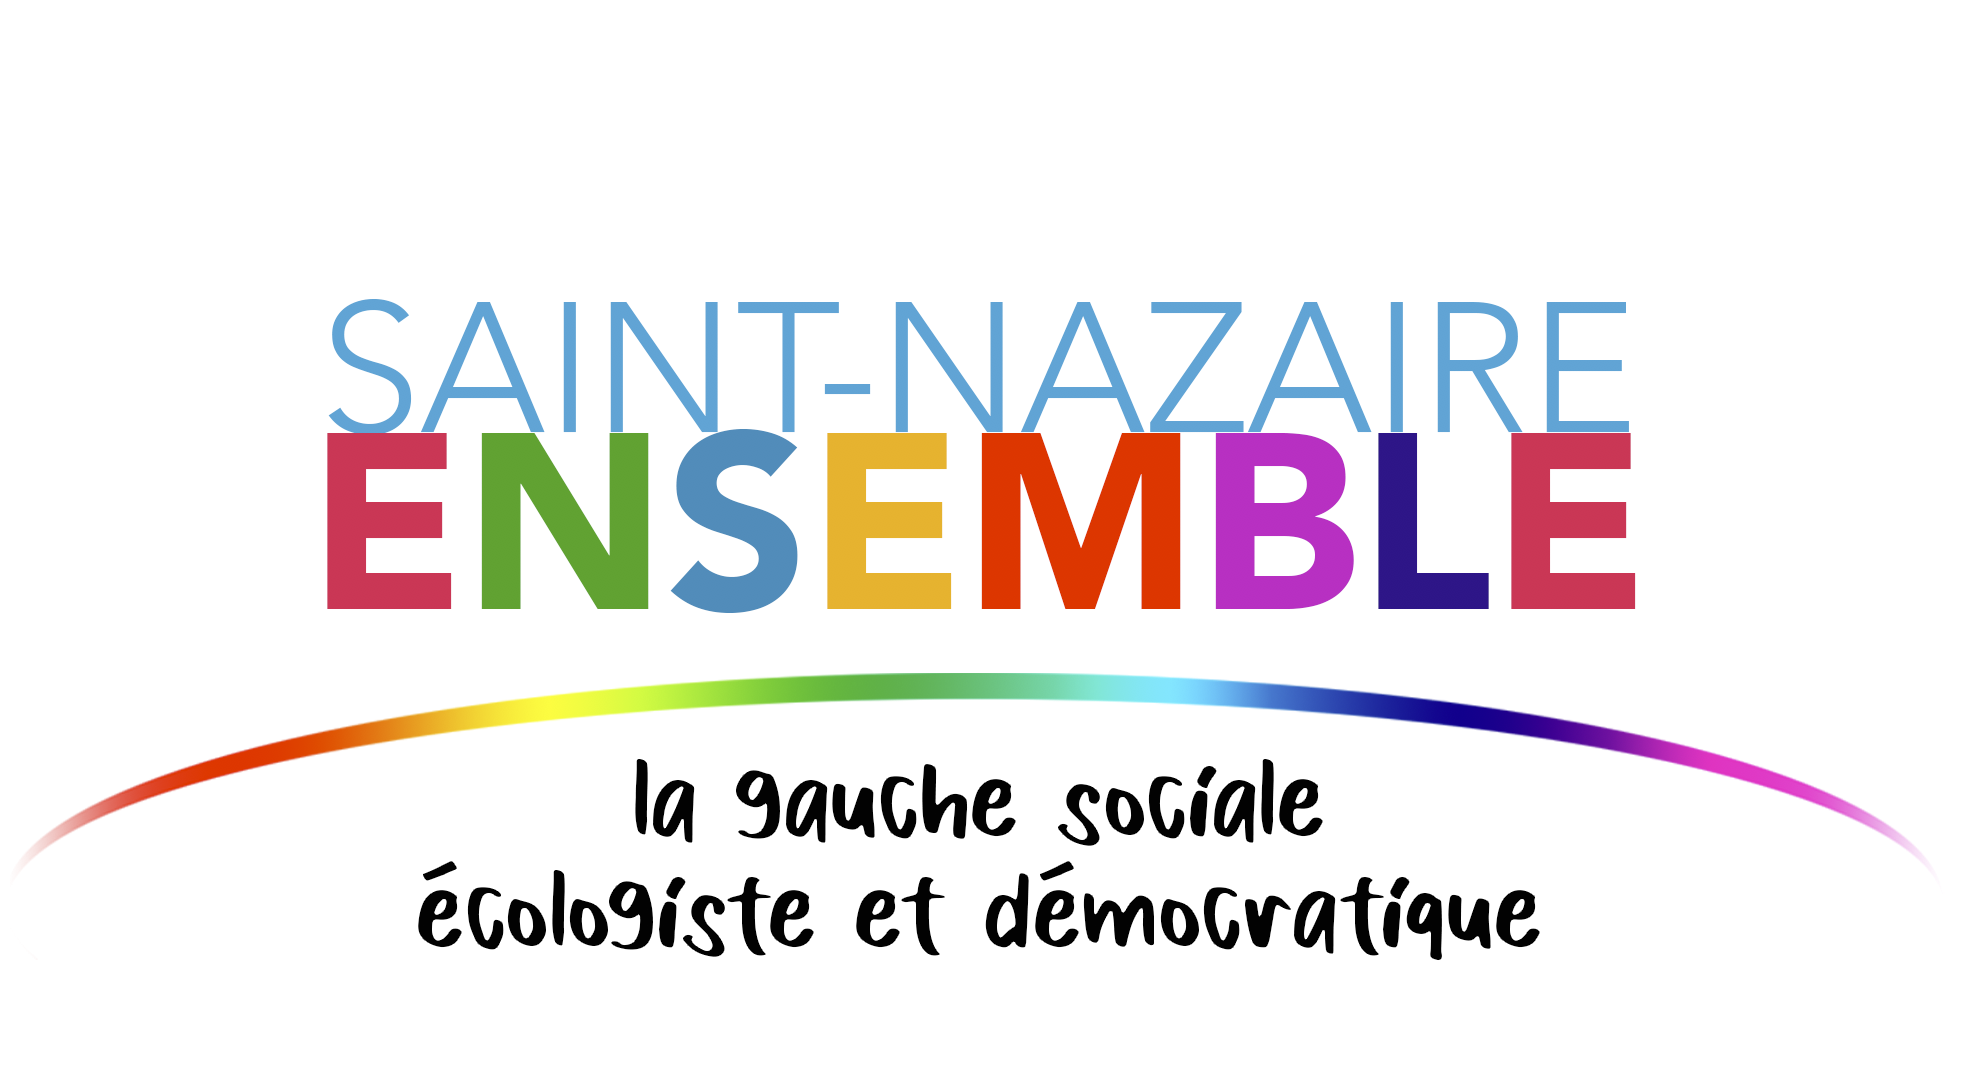 Saint-Nazaire ensemble